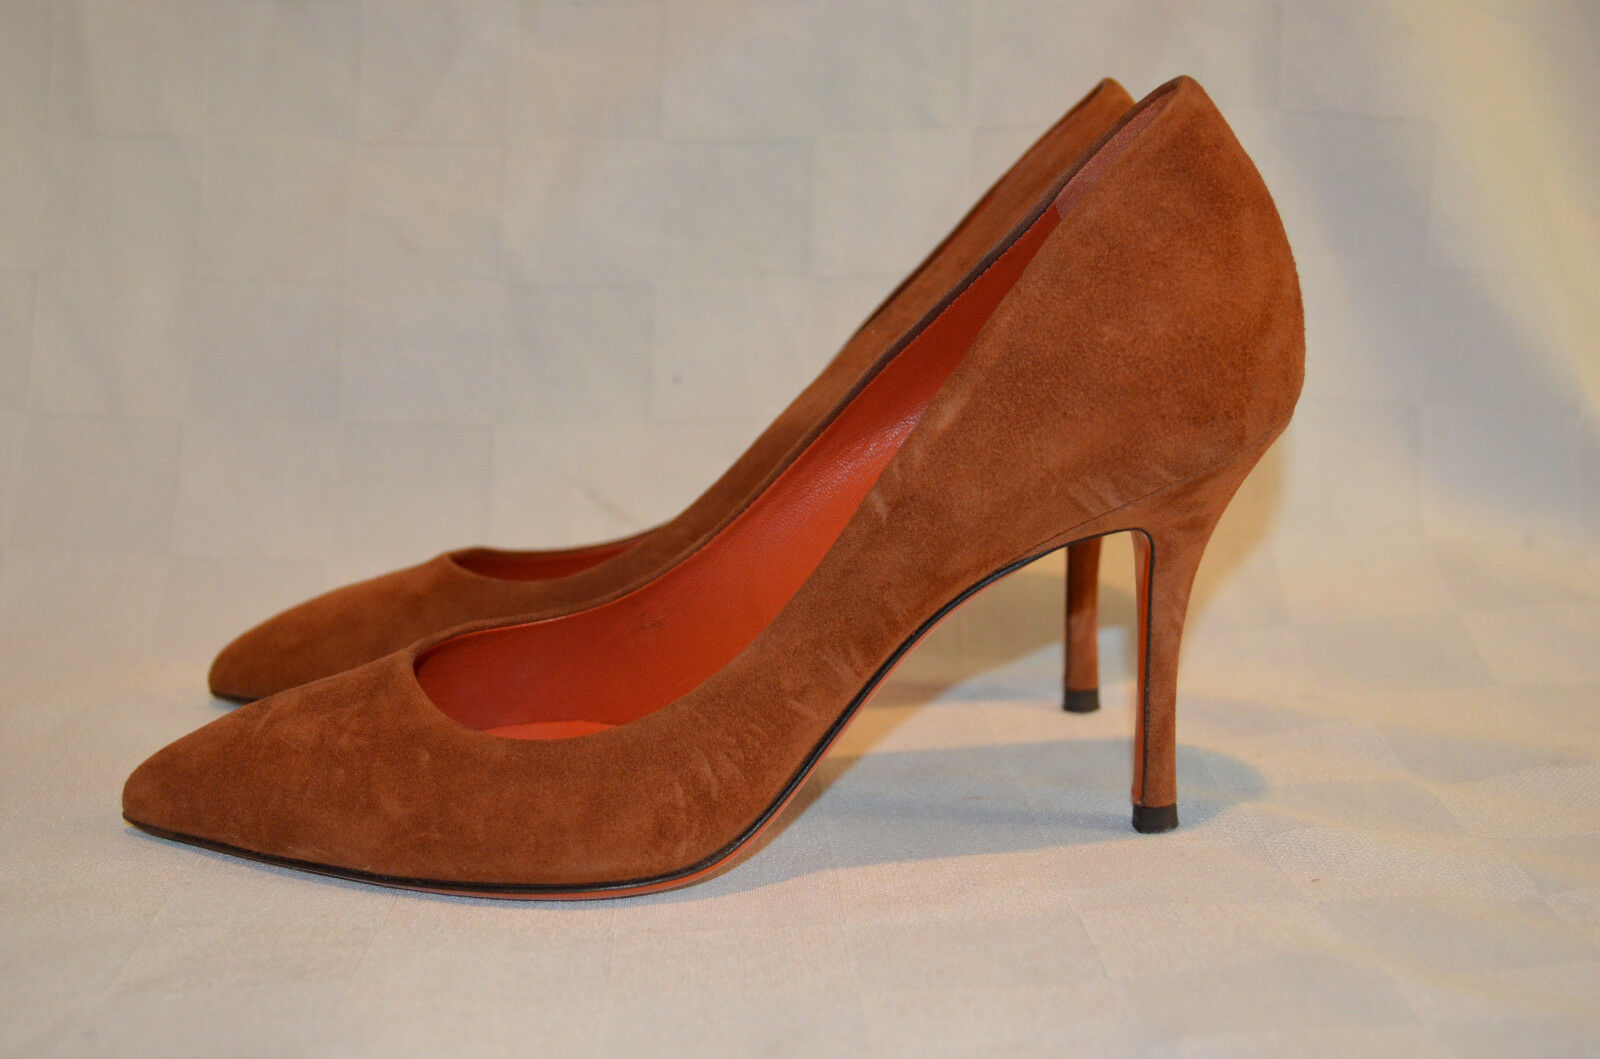 Sz 38 7.5 Santoni pink Collection Brown Suede Classic Pumps 3.5  Heels